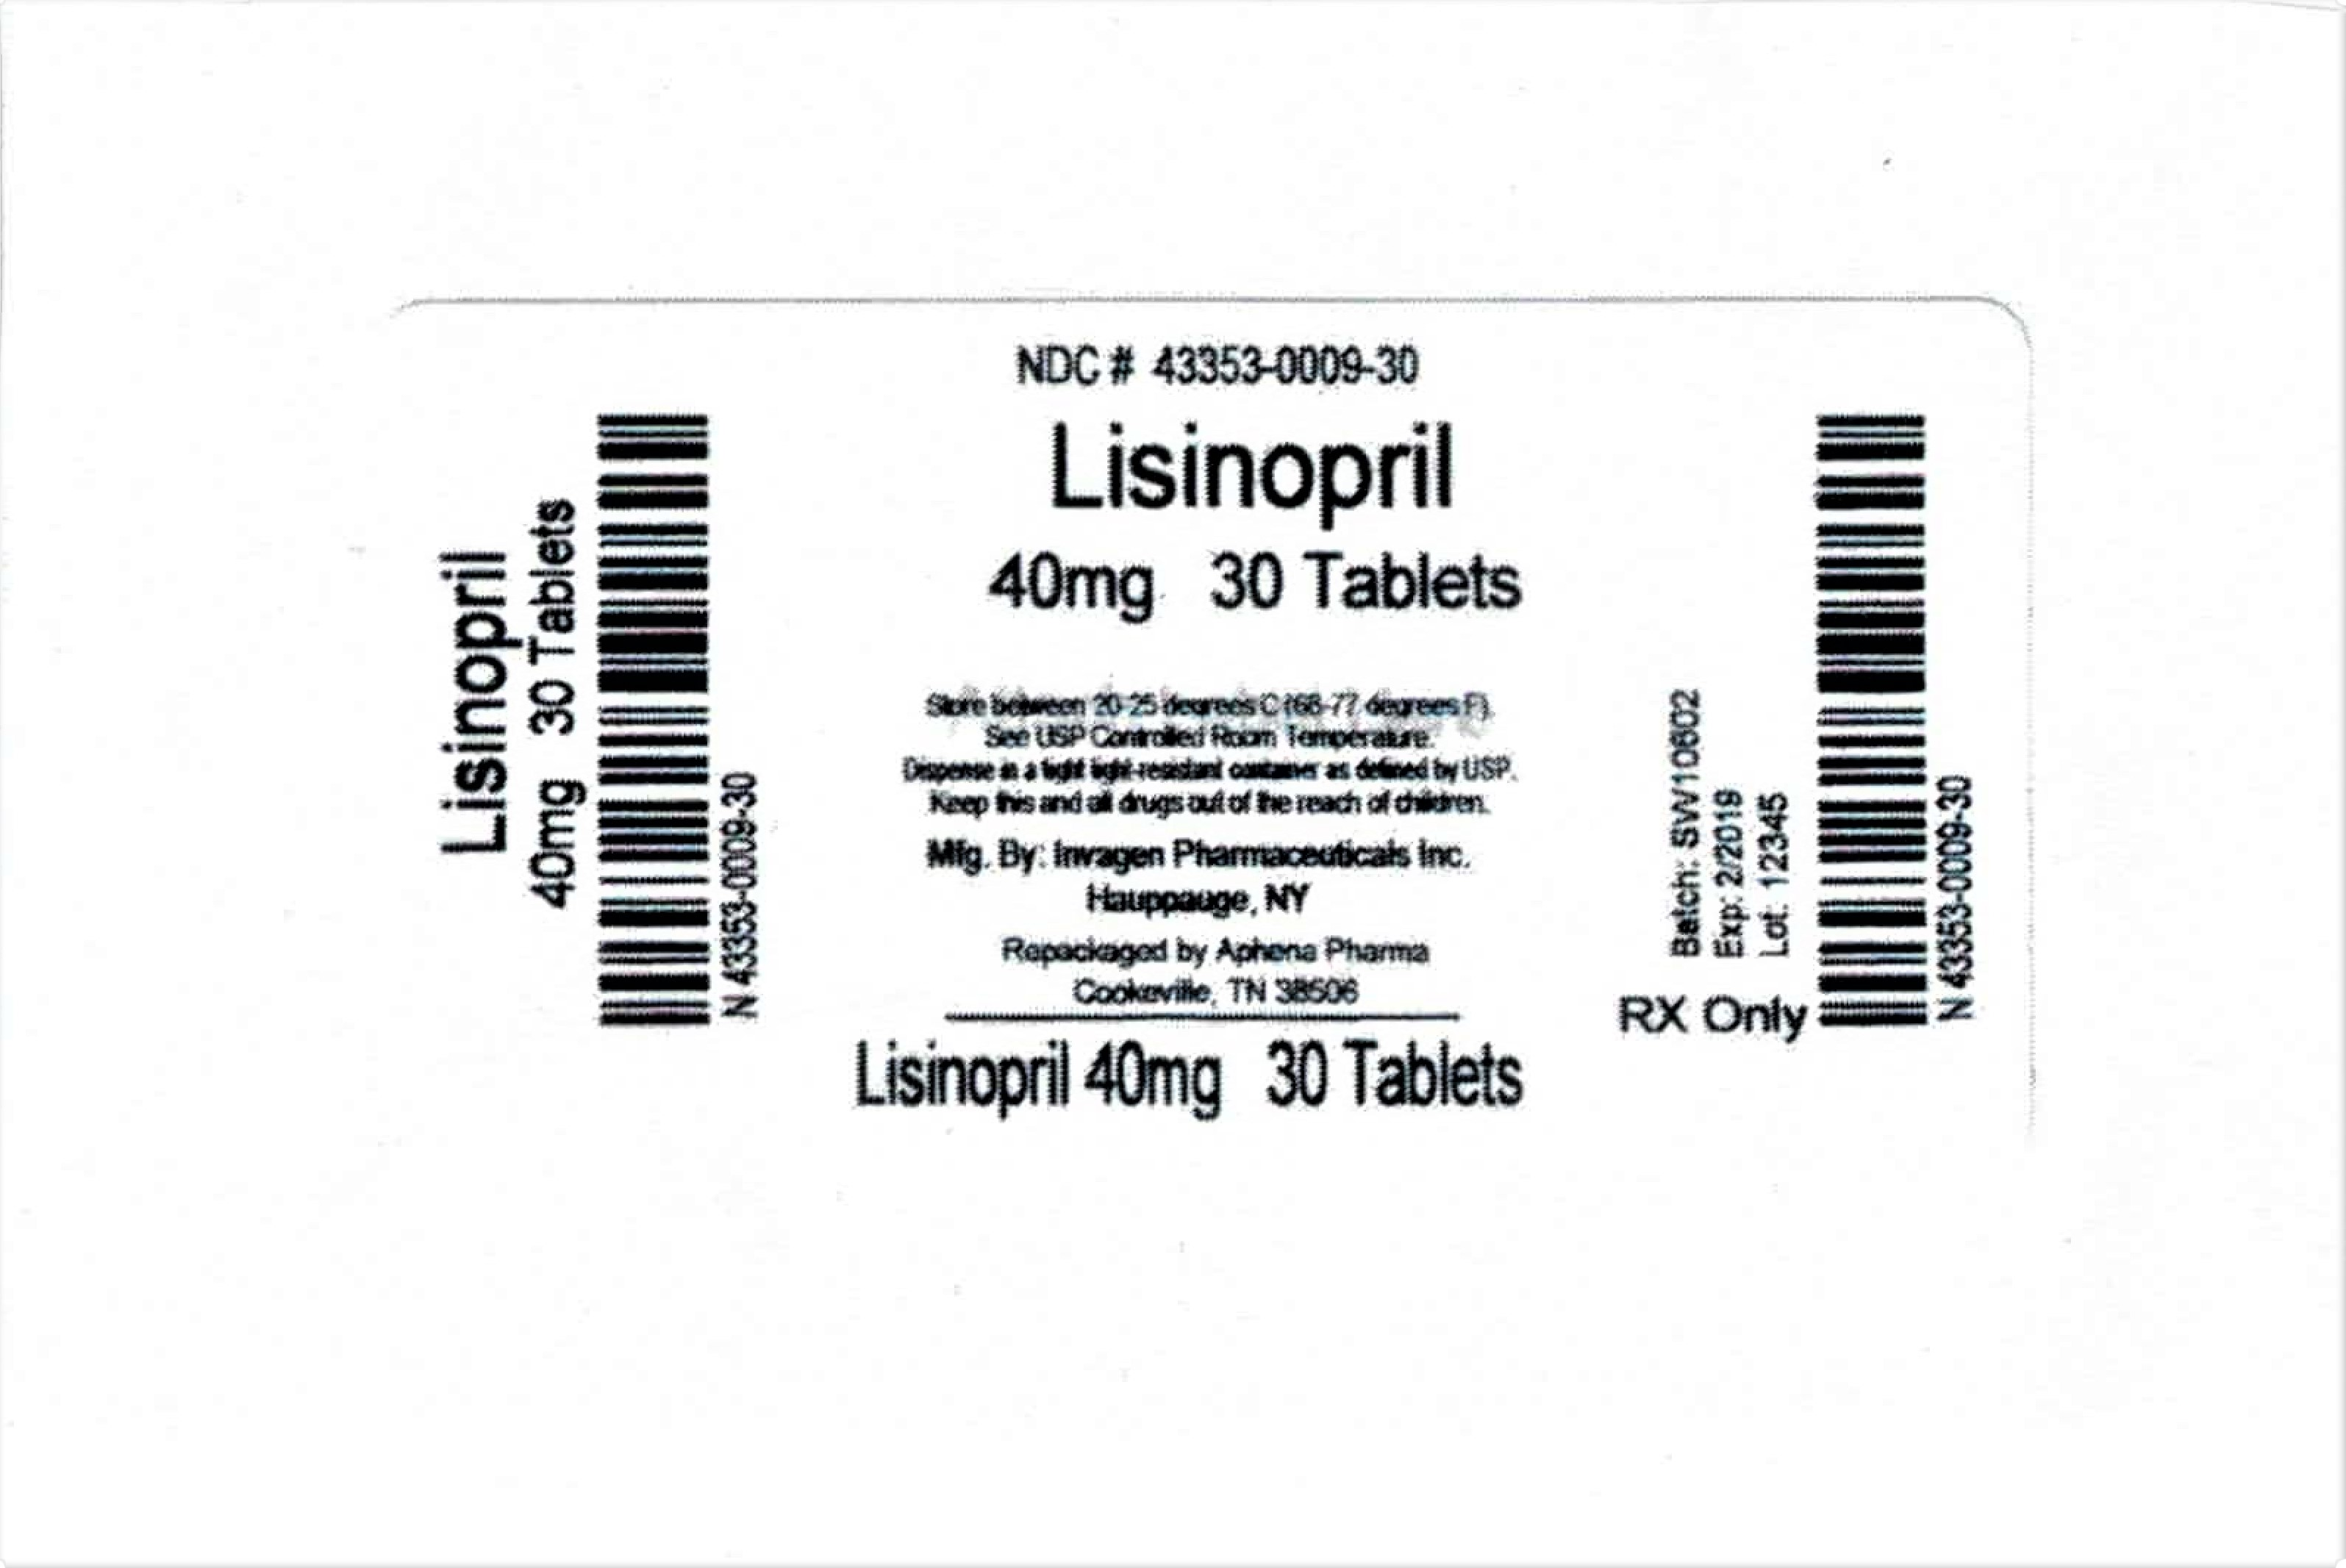 Lisinopril Tablets 40mg 30 Tablets